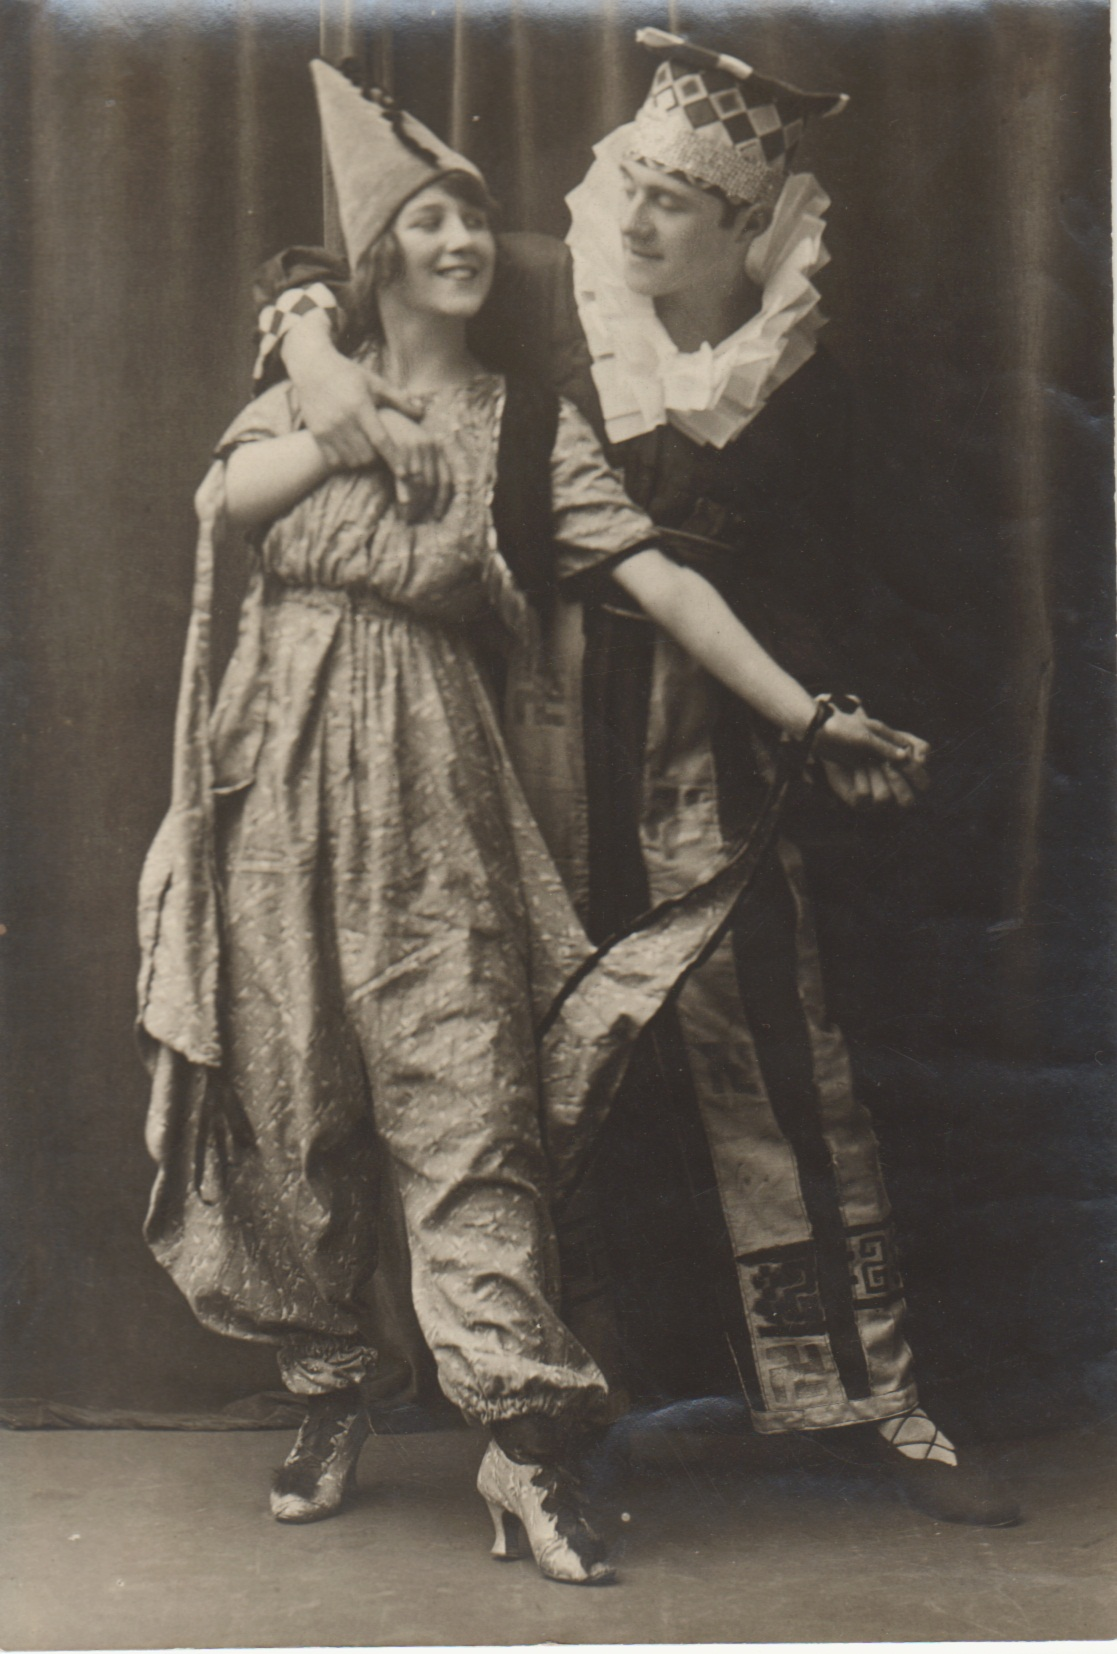 Photograph of GSA students Alec Milne and Alice Smith dancing in costume, 1910s.